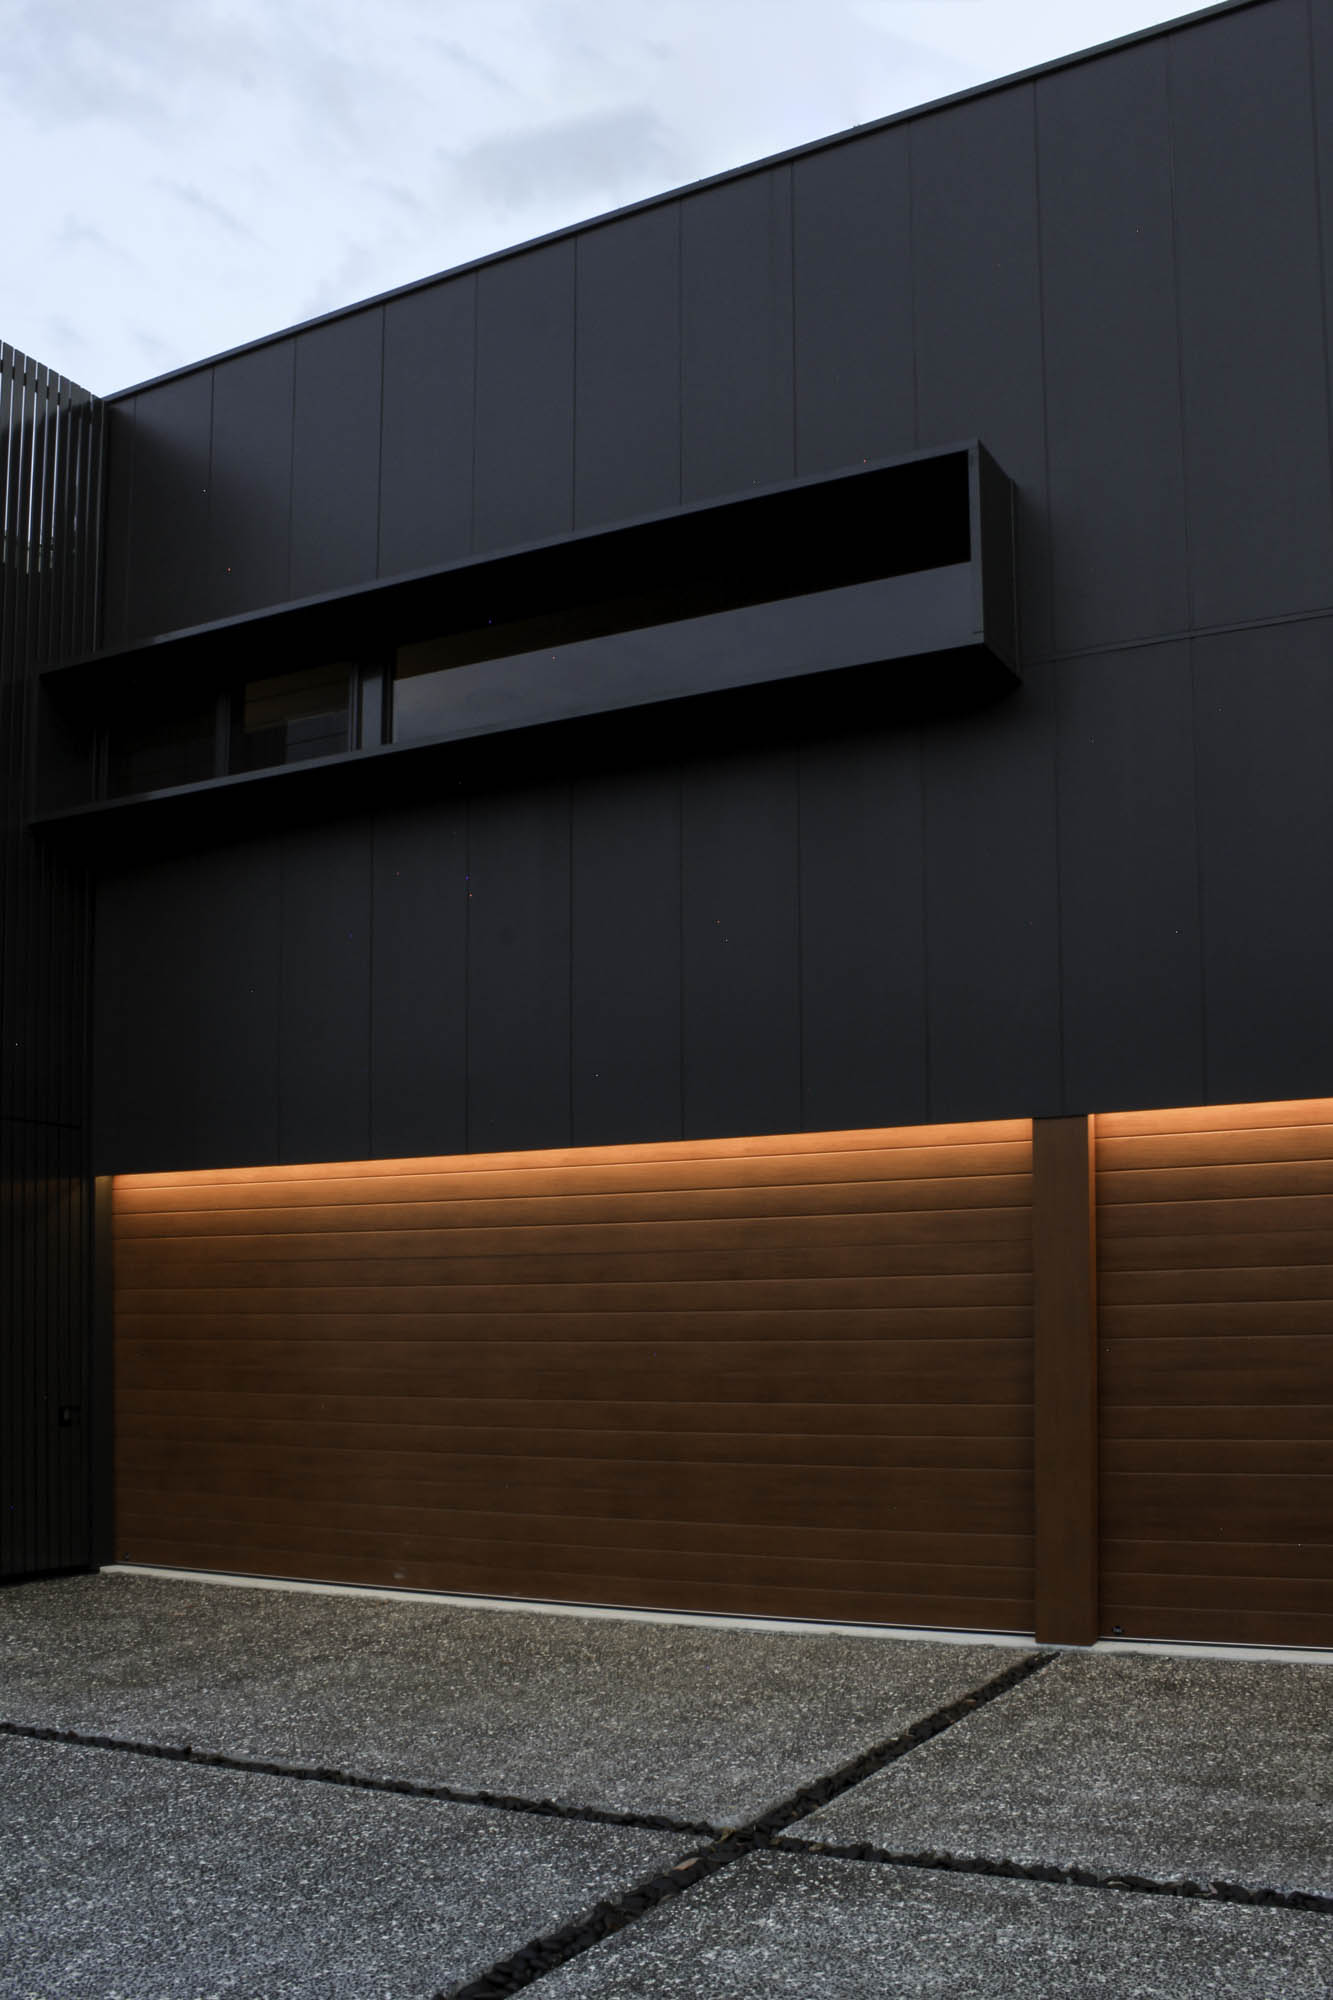 Dark Cladding + Warm Timber